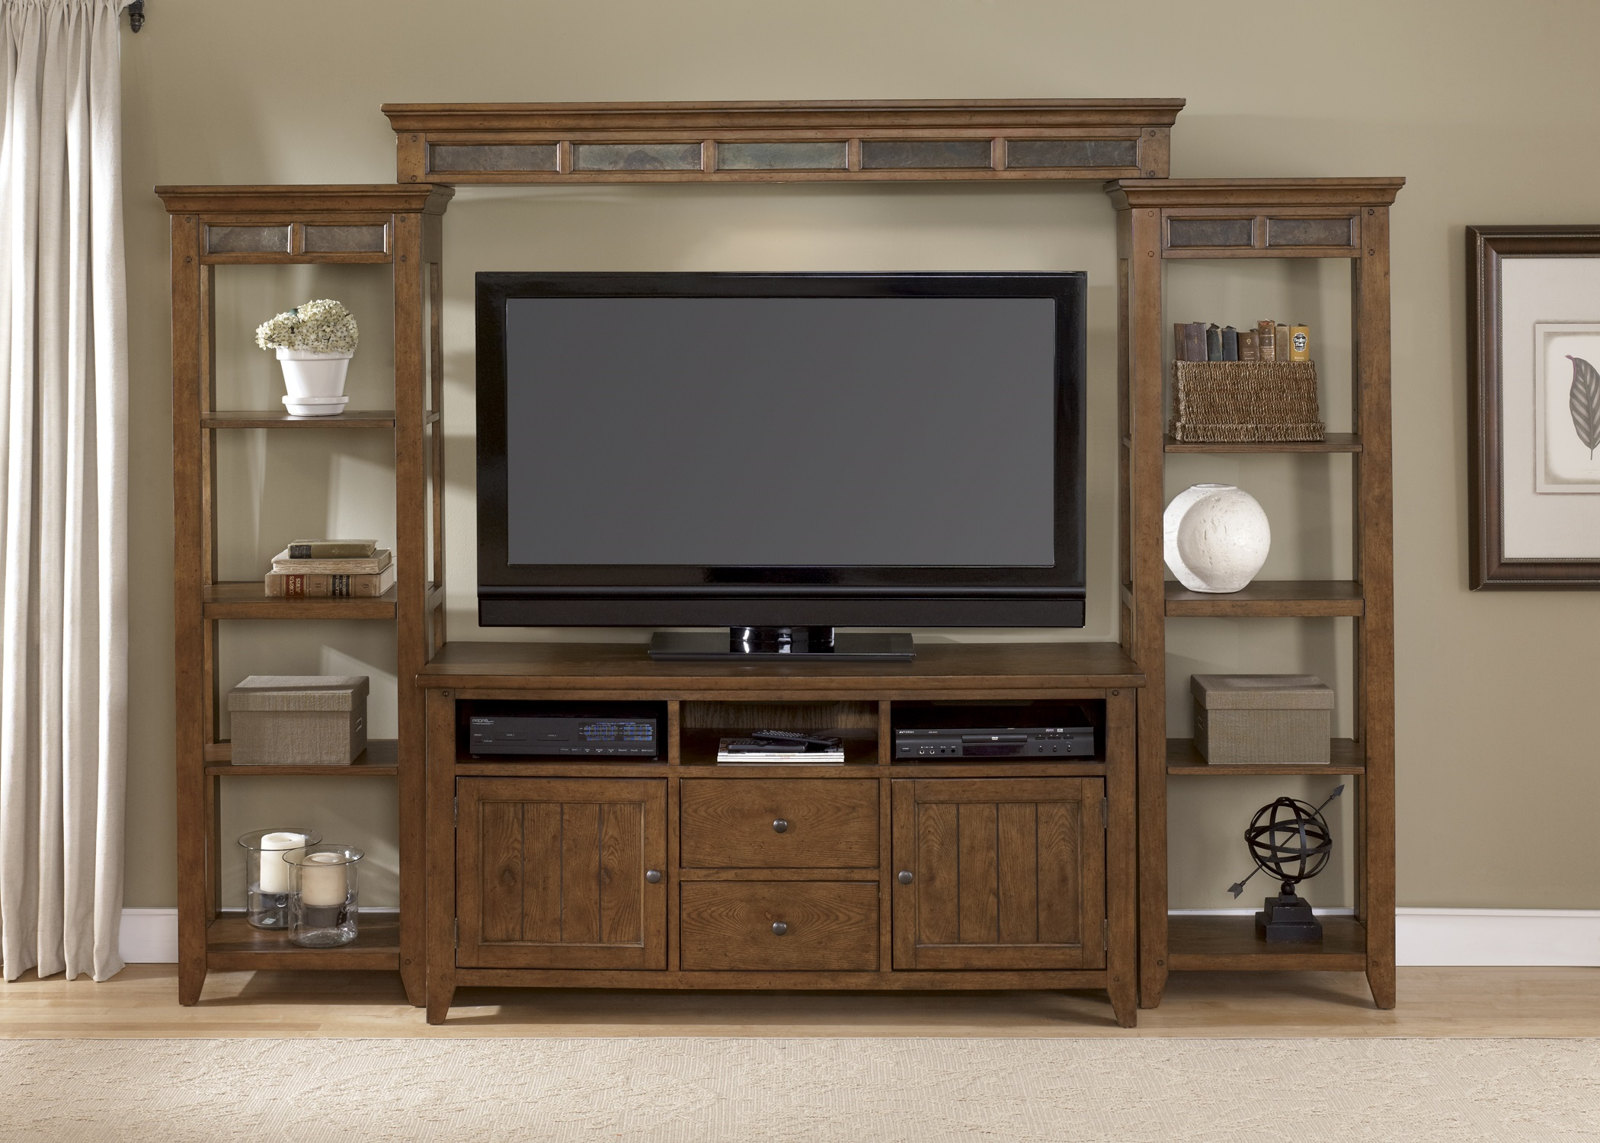 Liberty Hearthstone Entertainment Wall Set In Rustic Oak